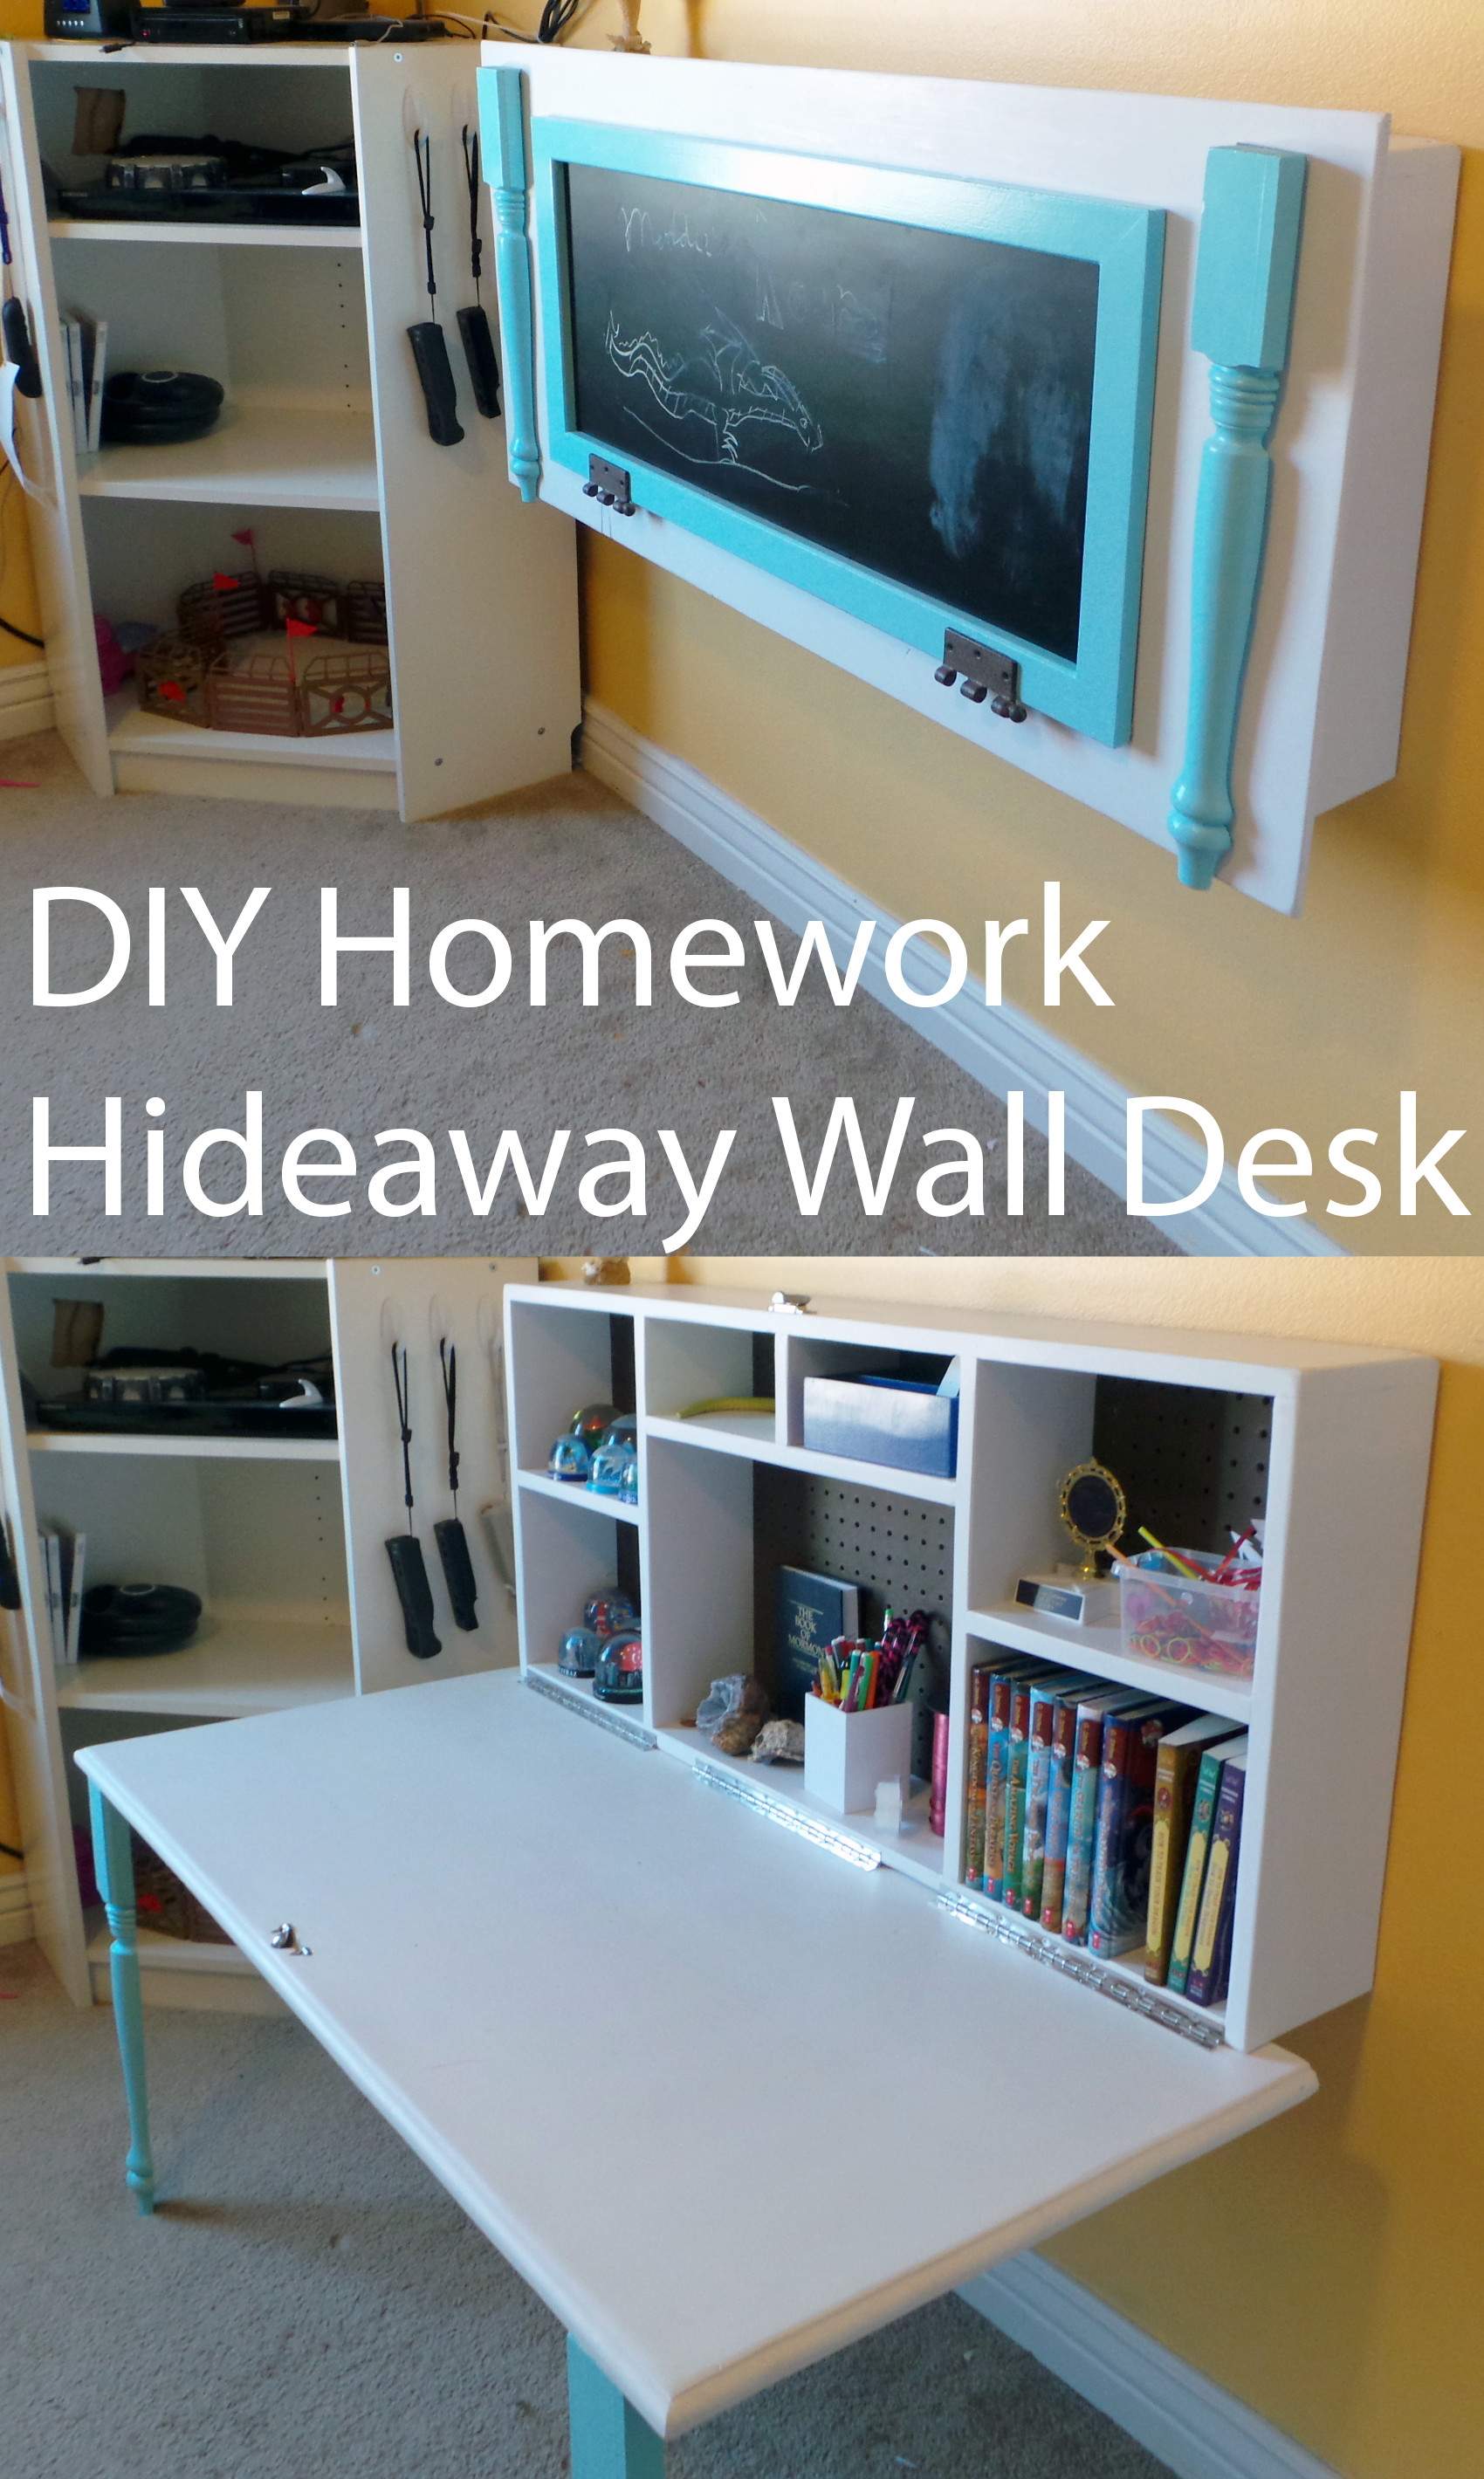 1700x2840 ... Uncategorized 47 Incredible Diy Desk Diyomeworkideaway Wall Desk  Uncategorized Kids The Organized Mom Incredible Desktop Wallpaper